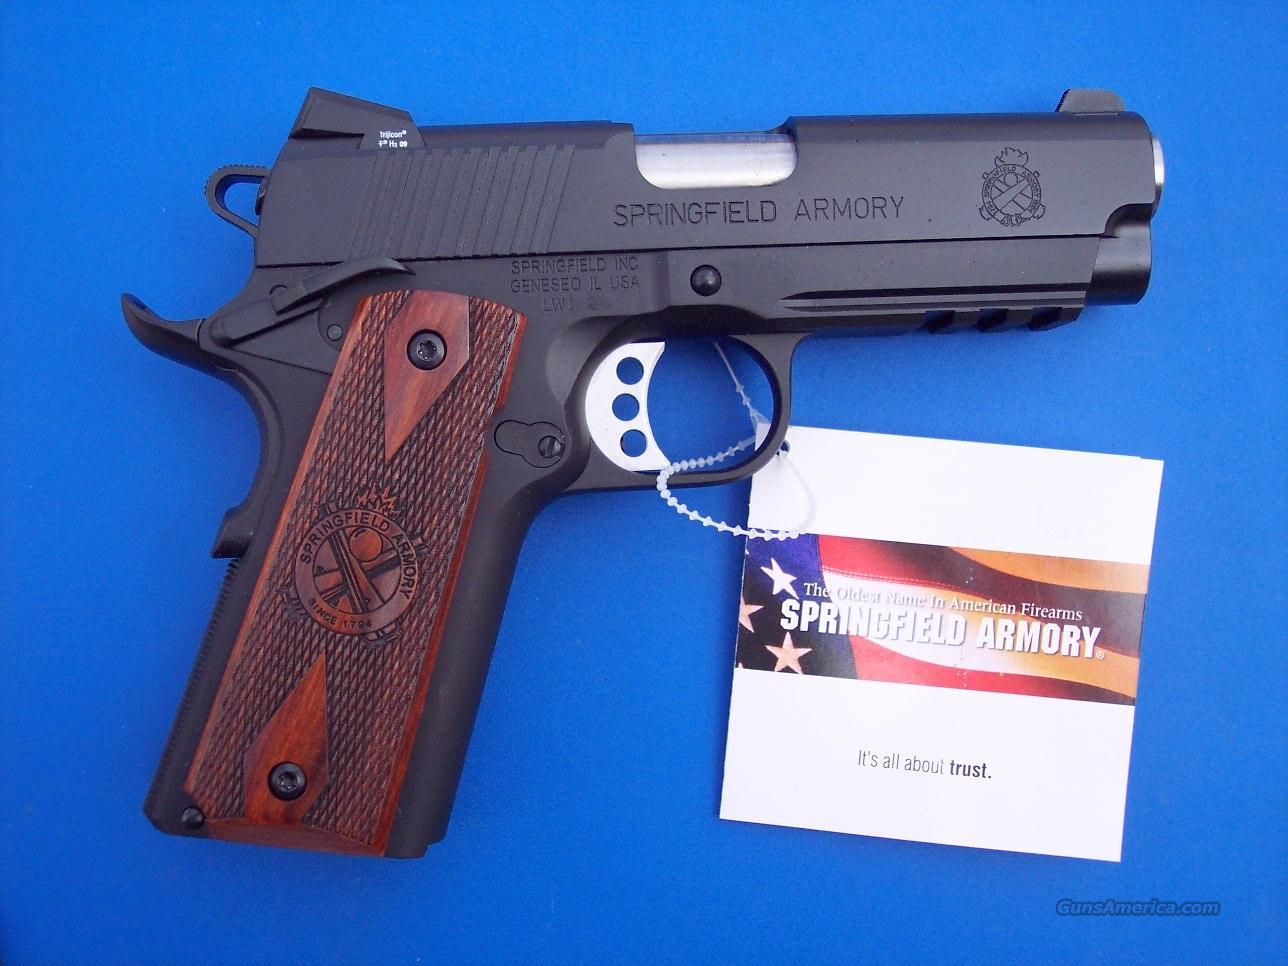 Springfield Champion Operator Lightweight 45 acp *NIB* 1911 Gear Pkg PX9115L PLUS - 4 Extra Mags, Holster and Mag Pouch  Guns > Pistols > Springfield Armory Pistols > 1911 Type